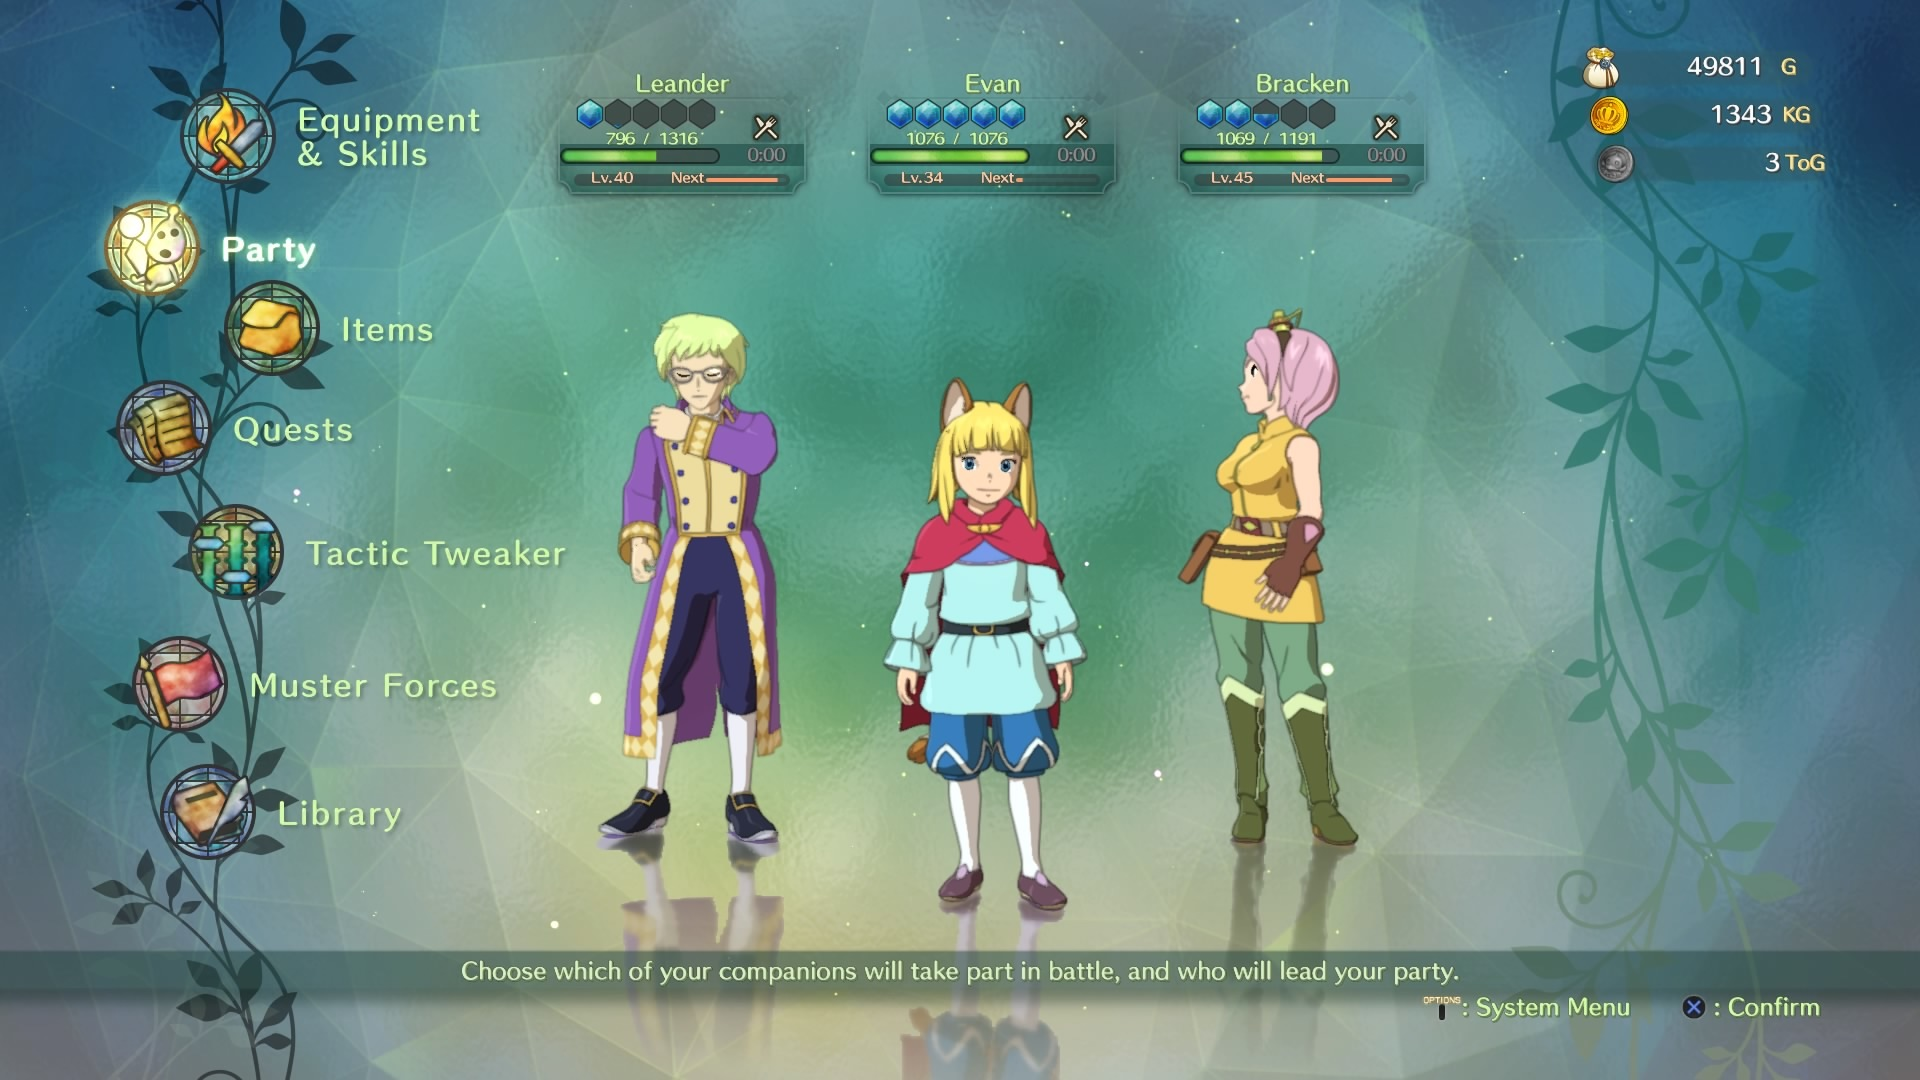 Pictures Of Ni No Kuni Ii A Helpful Guide Through Evan S Quest 5 9